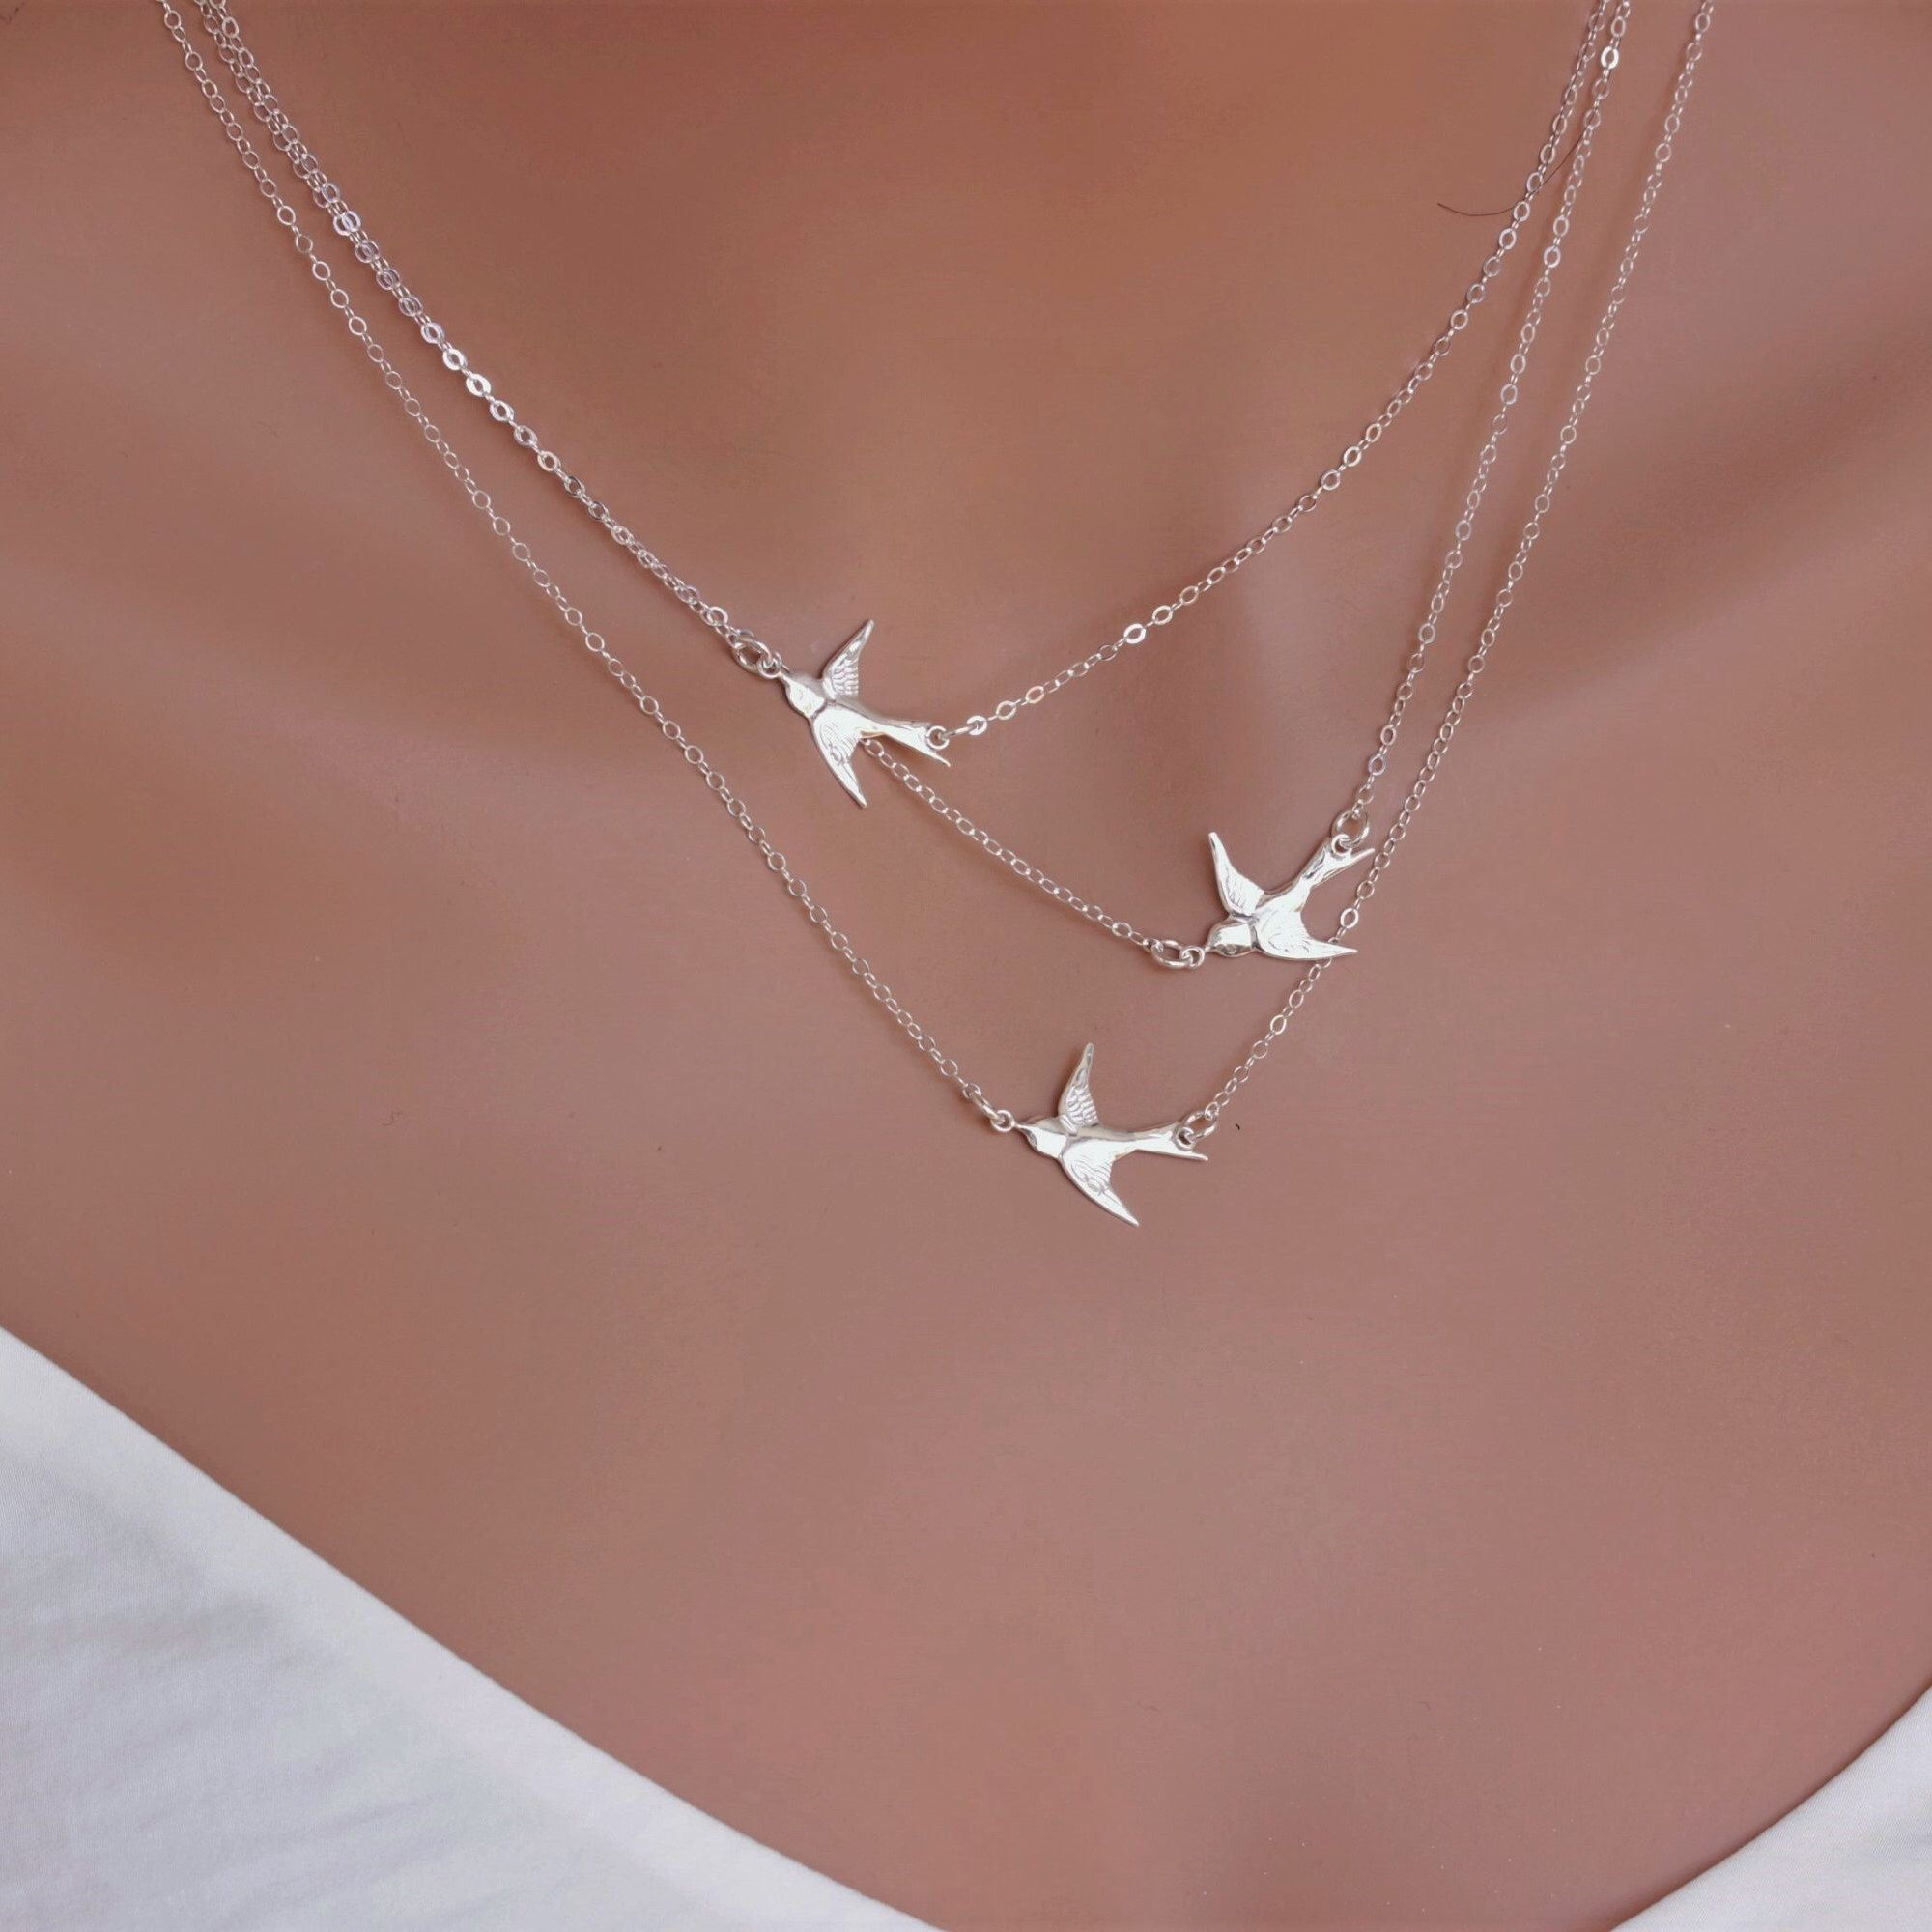 Flying Birds Necklace in Sterling Silver 14k Gold fill ...